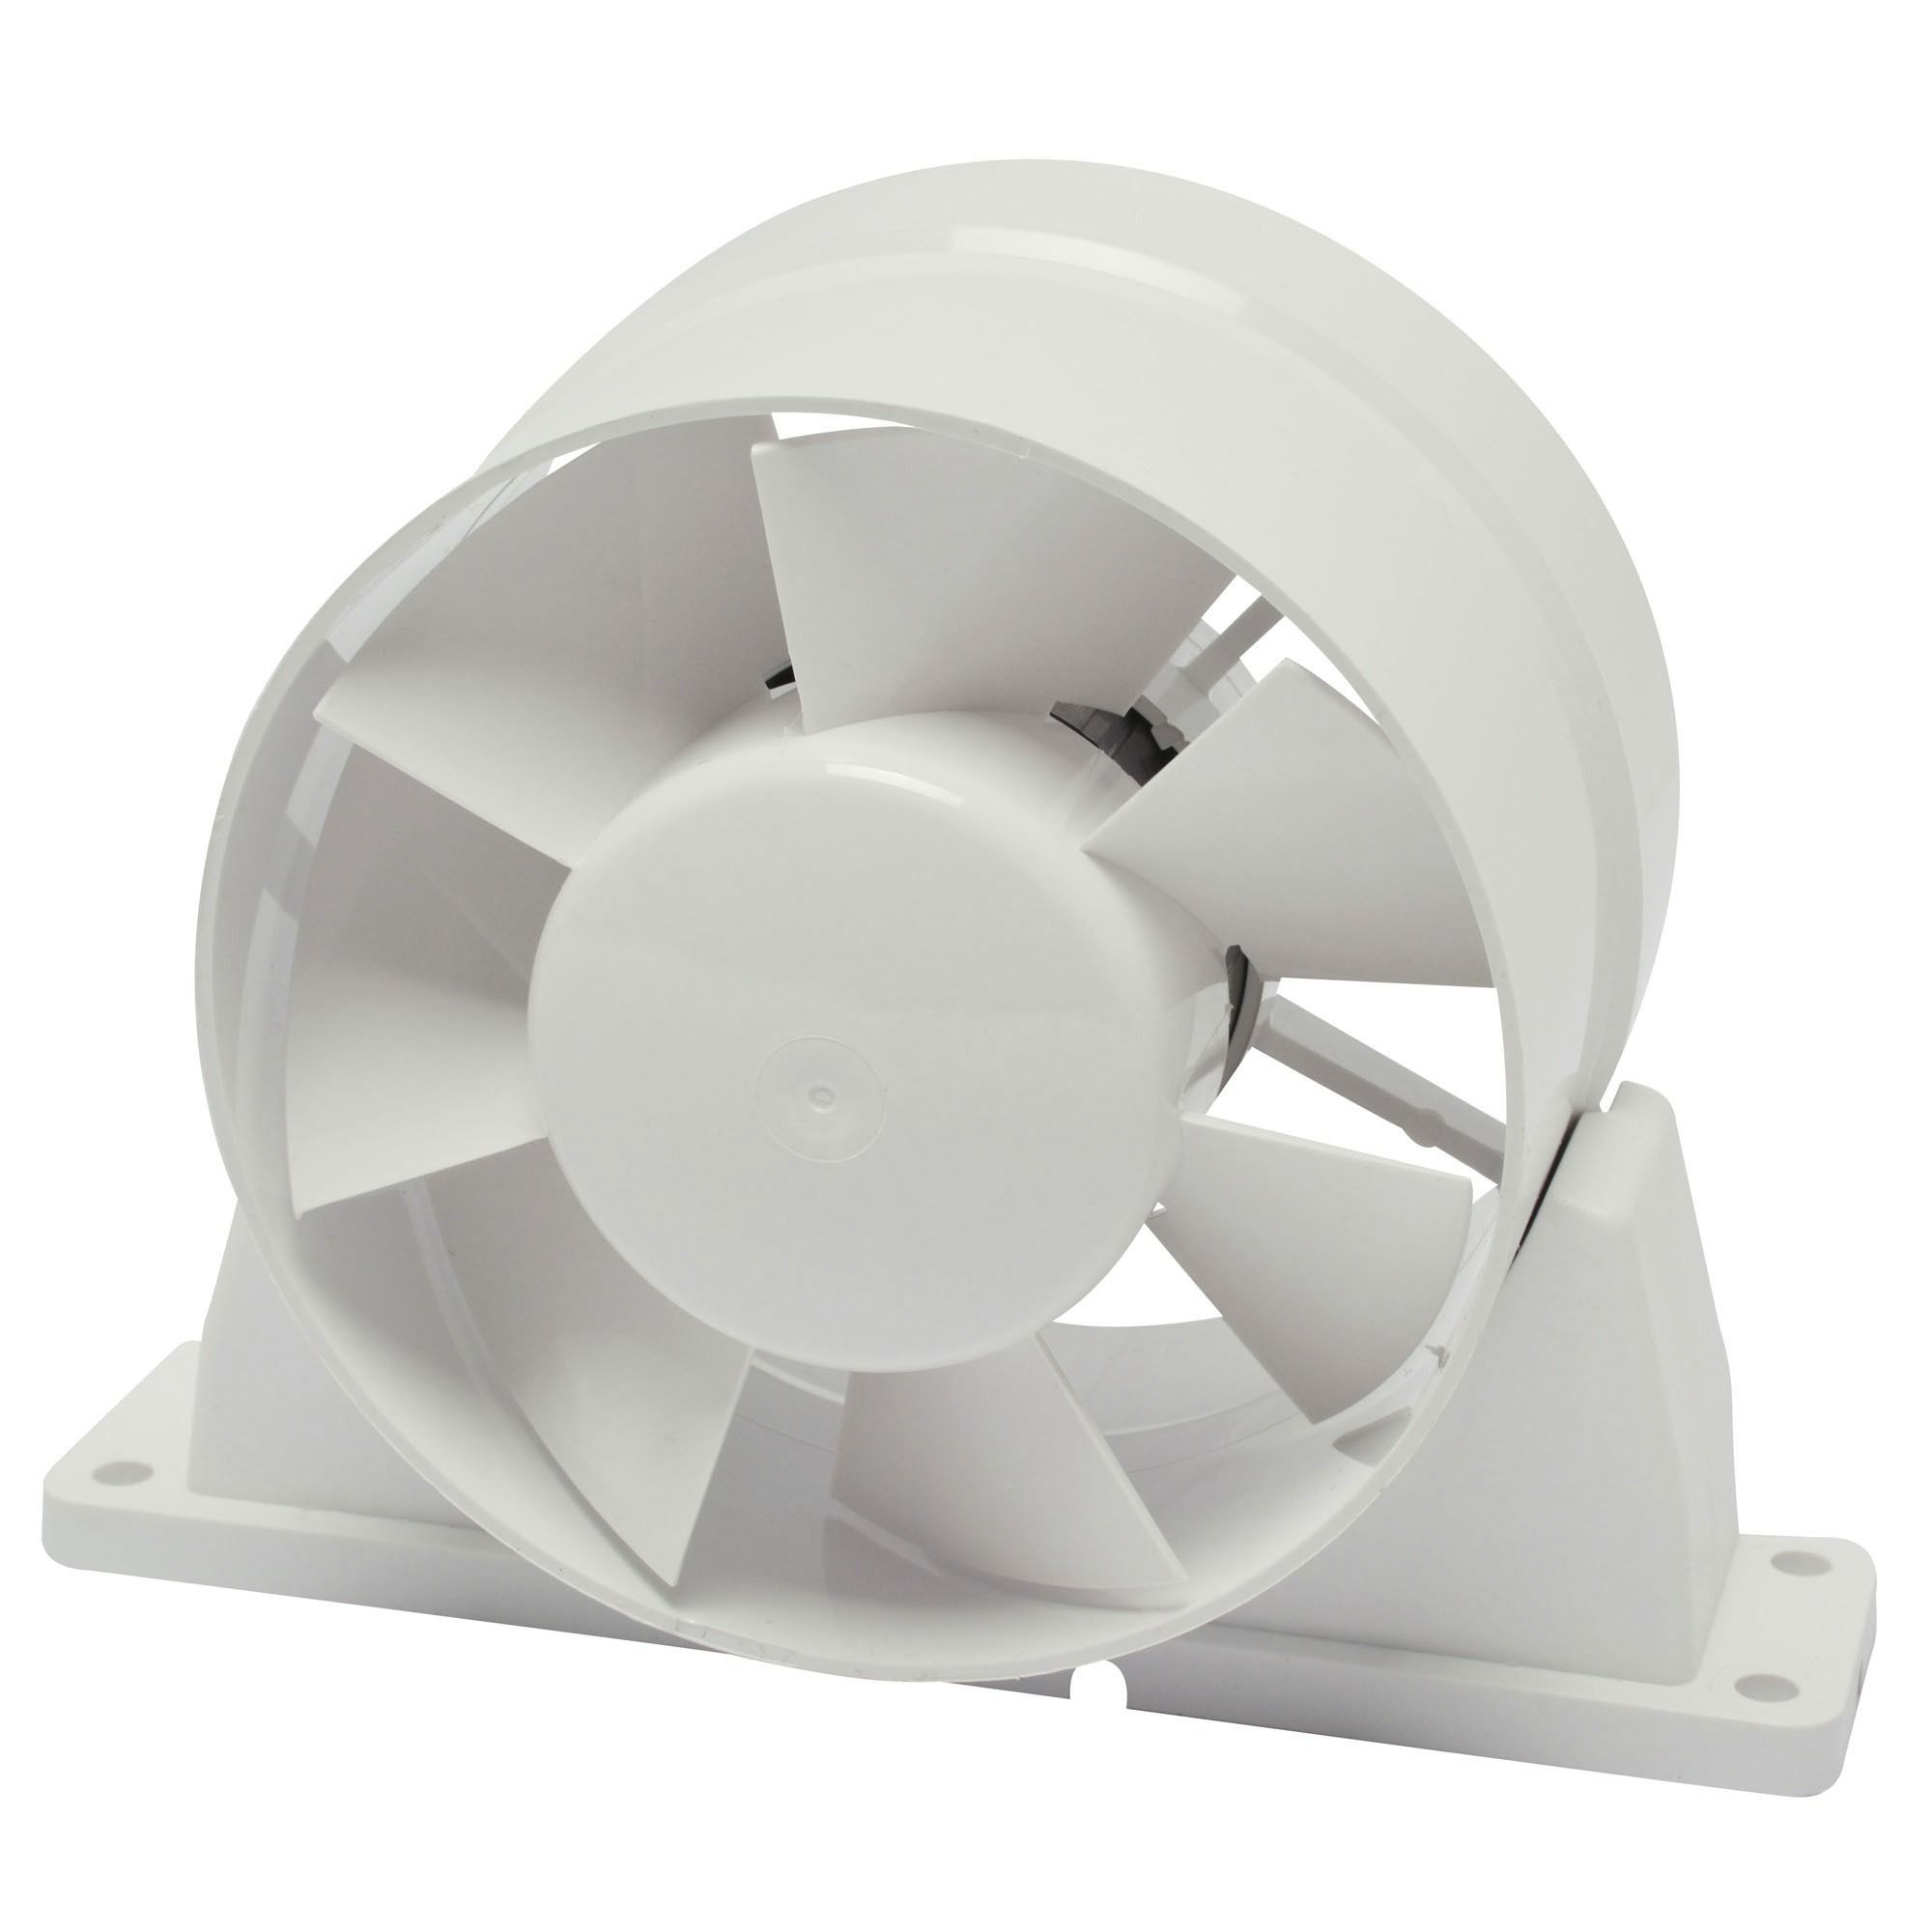 Ivc Air Buisventilator Pvc 125 Mm Gamma - Badkamer Ventilator 125